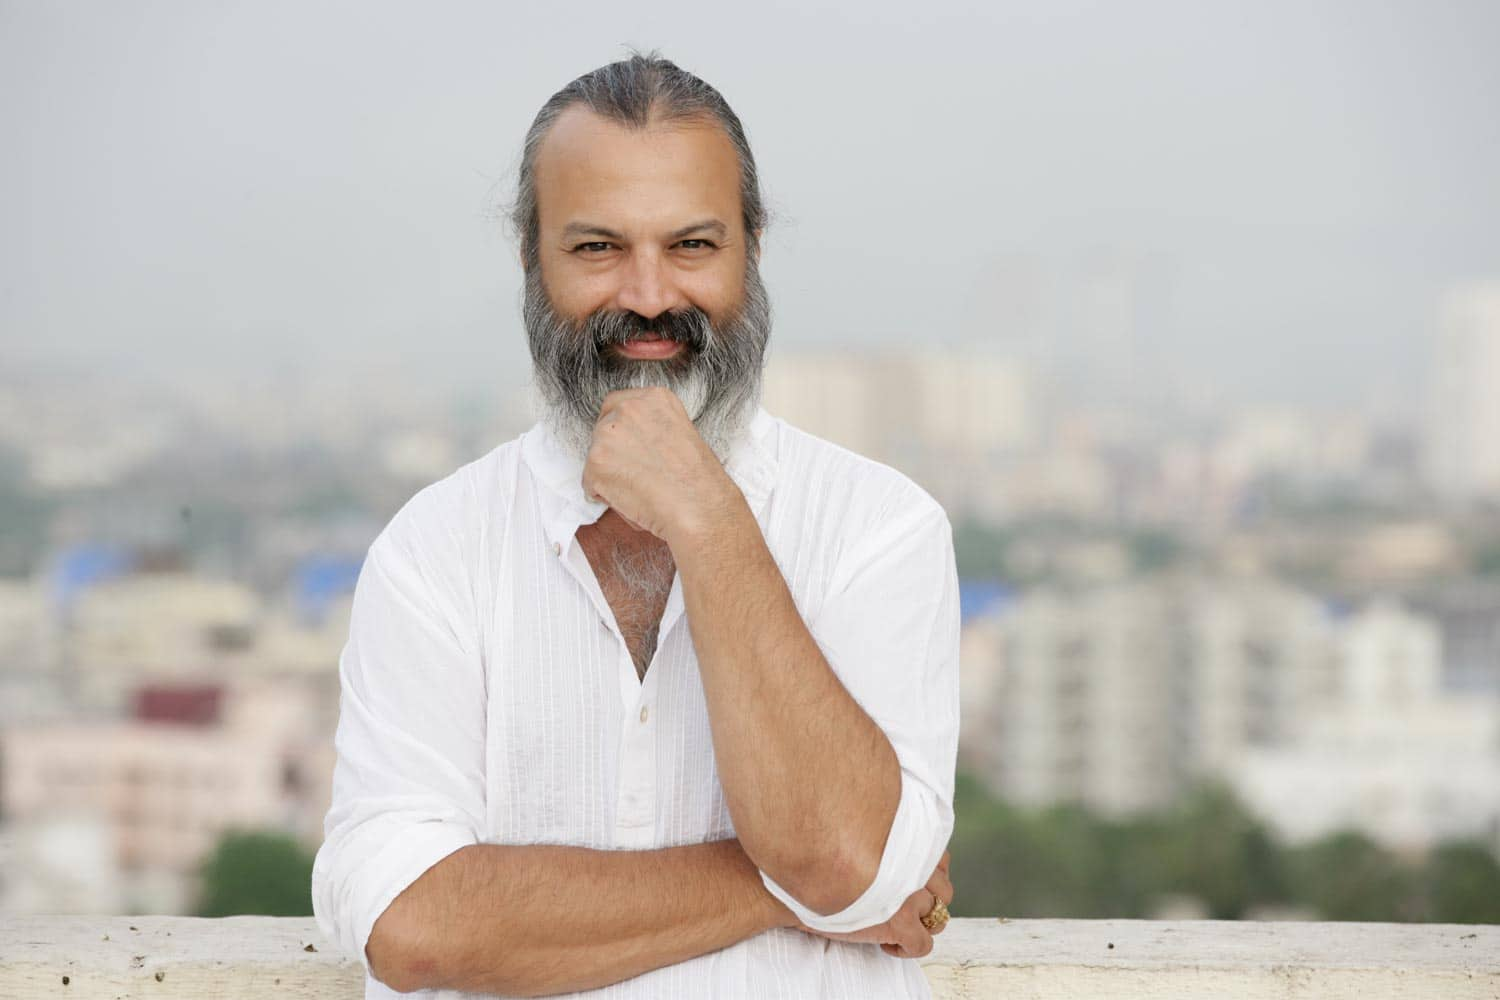 Bijoy Anand - He will play the patriarch of the family and his role will be on the lines of Amitabh Bachchan in K3G.